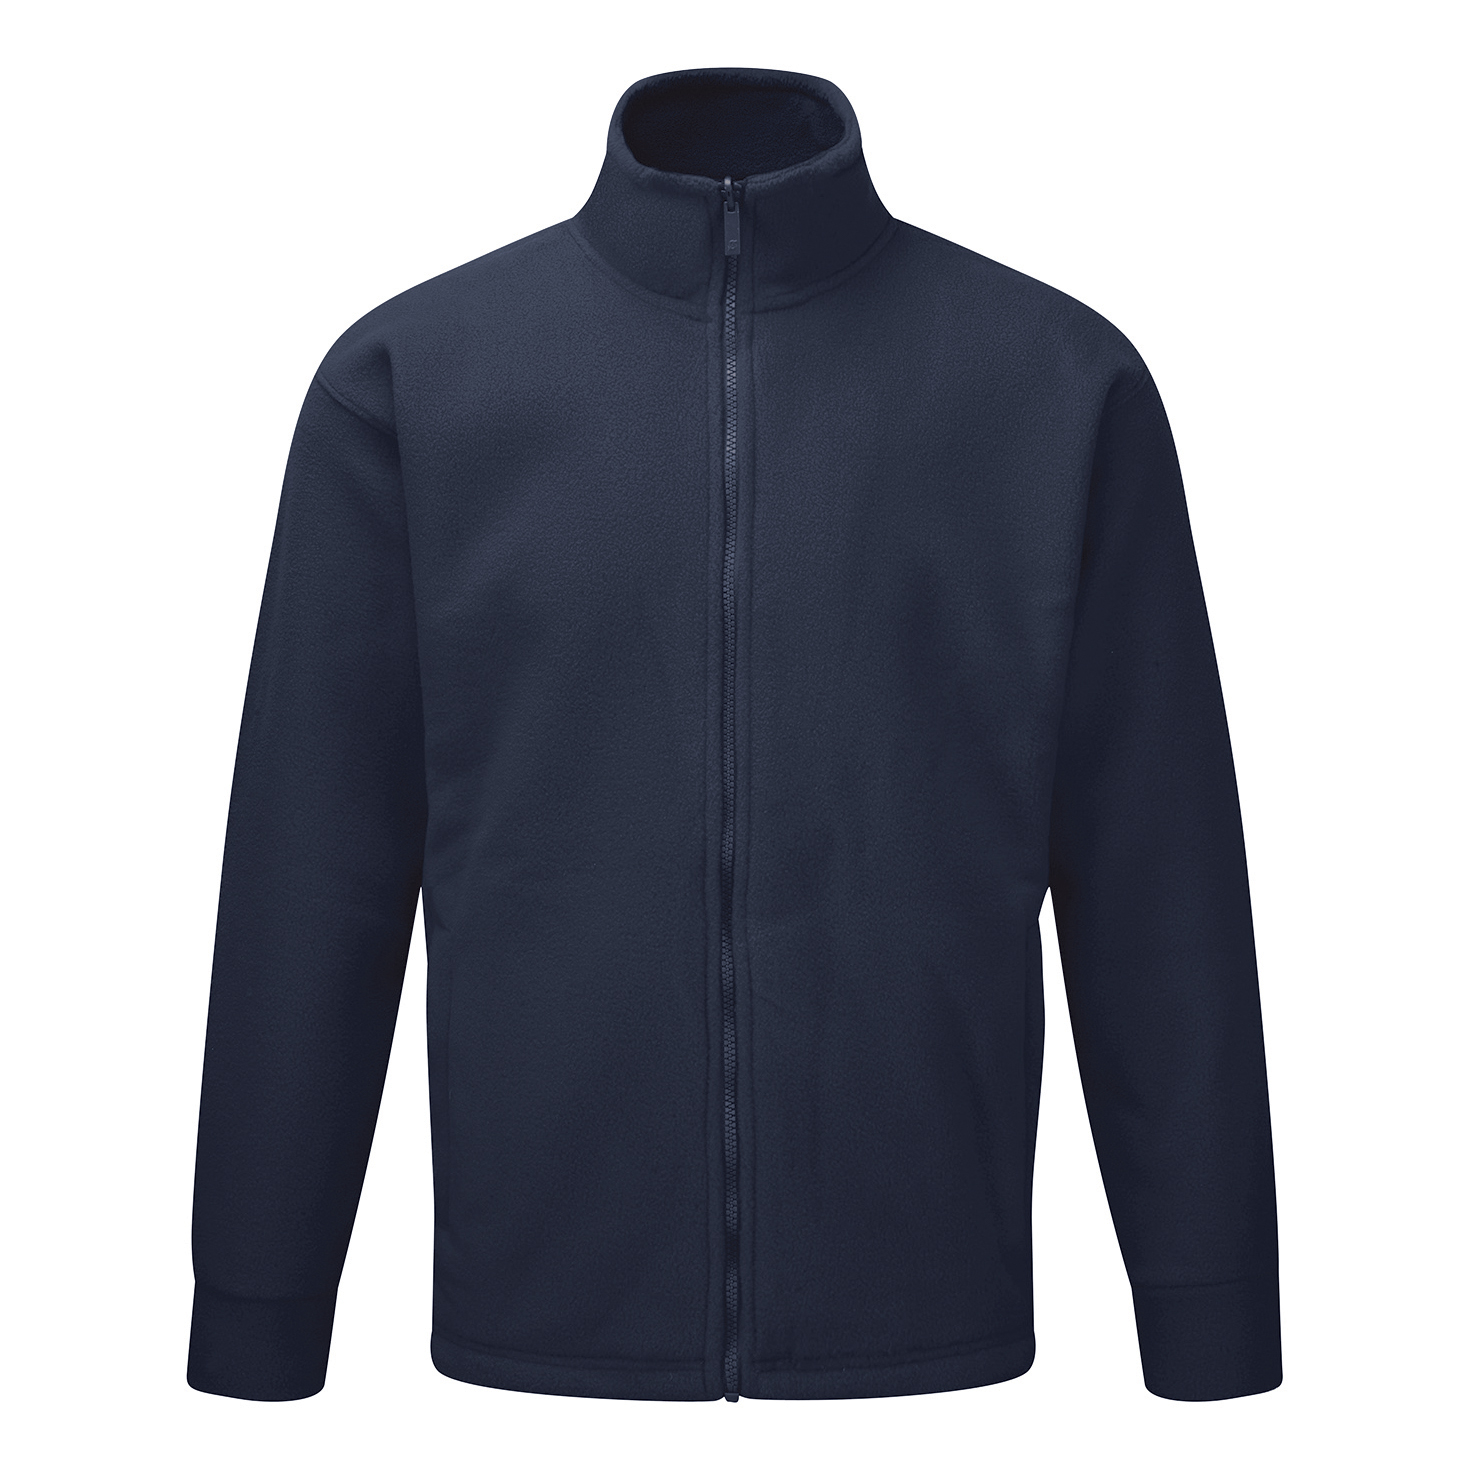 Classic Fleece Jacket Elasticated Cuffs Full Zip Front 2XL Navy Blue Ref FLJNXXL 1-3 Days Lead Time